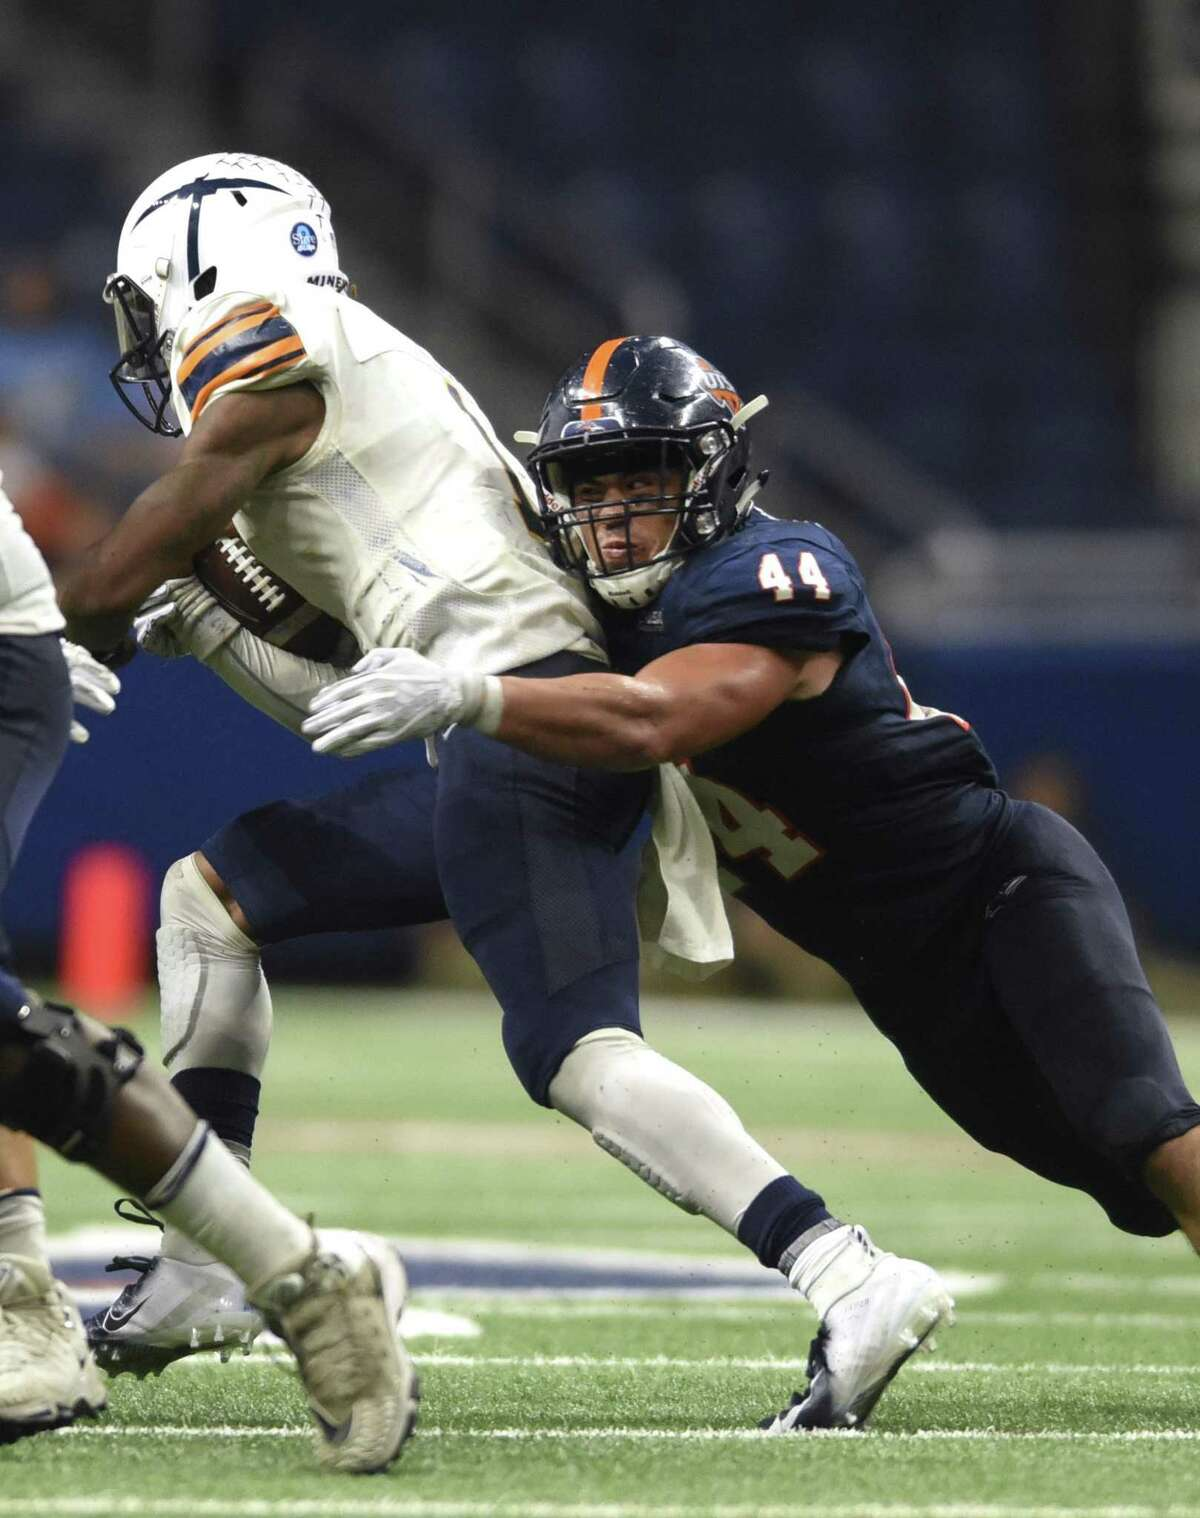 UTEP's Treyvon Hughes is taken down by UTSA's linebacker Les Maruo during second-half college football action in the Alamodome on Saturday, Sept. 29 2018.